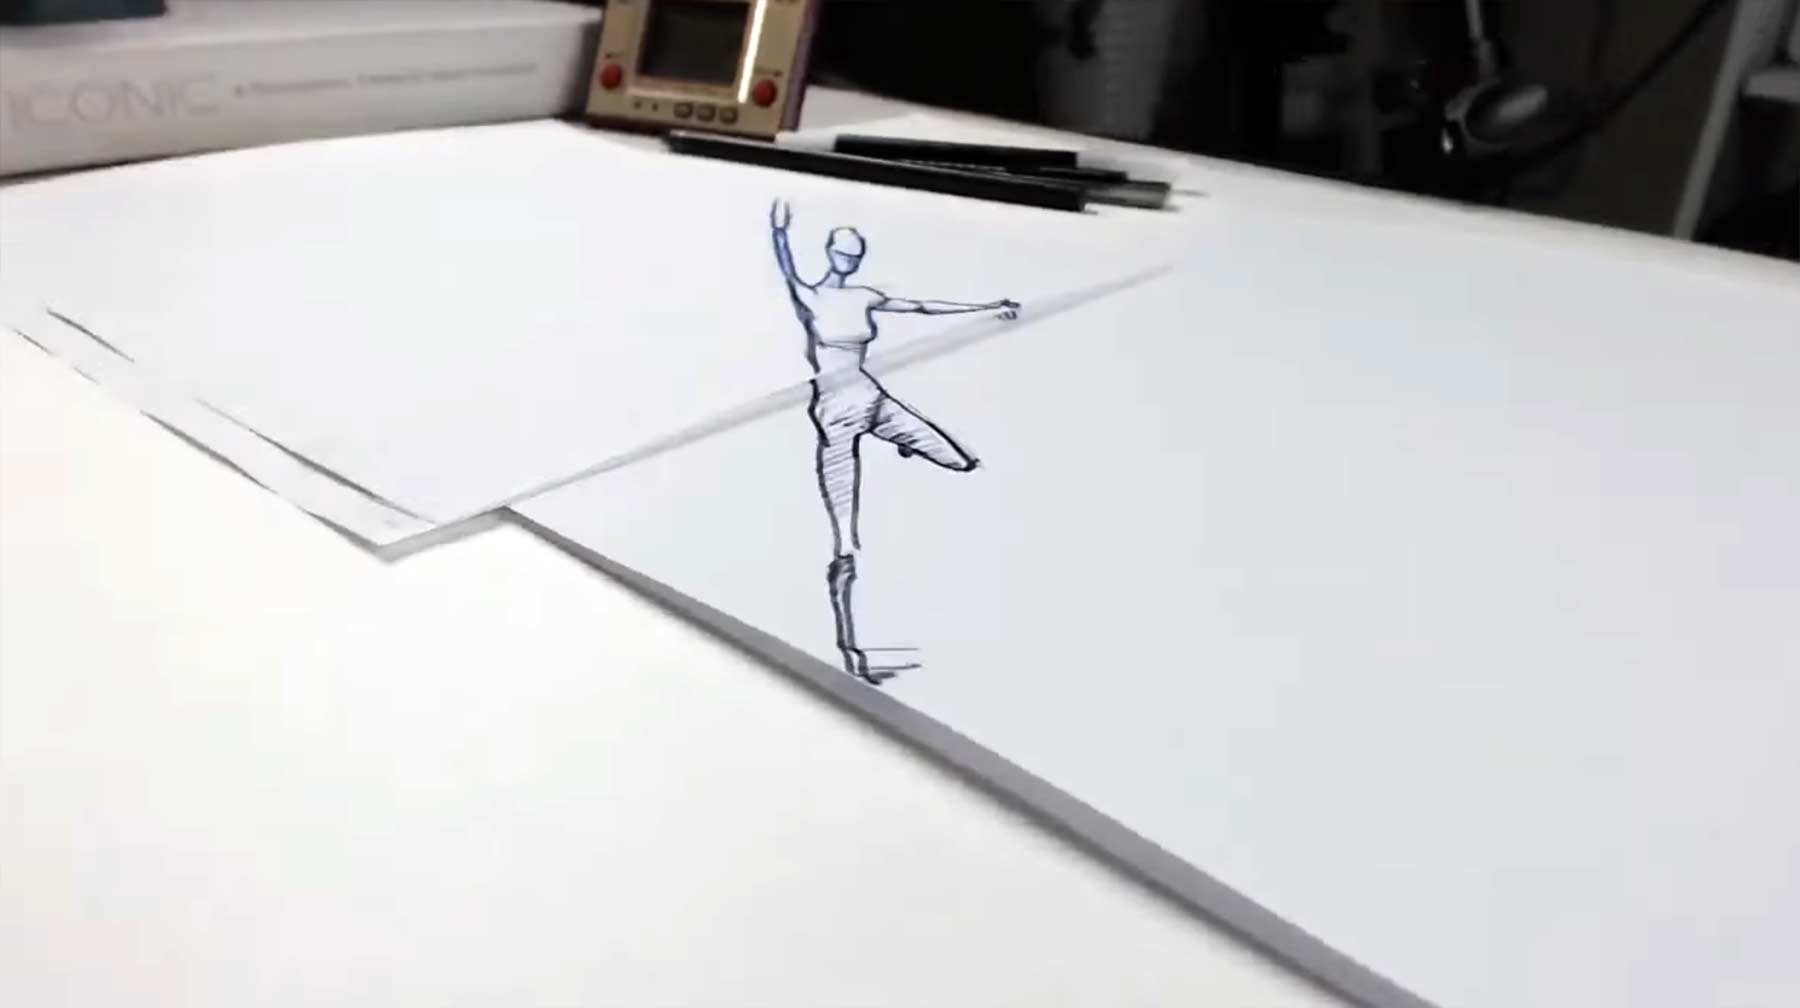 3D-Zeichnung tanzt im Stopmotion-Kreis dancer-drawn-on-paper